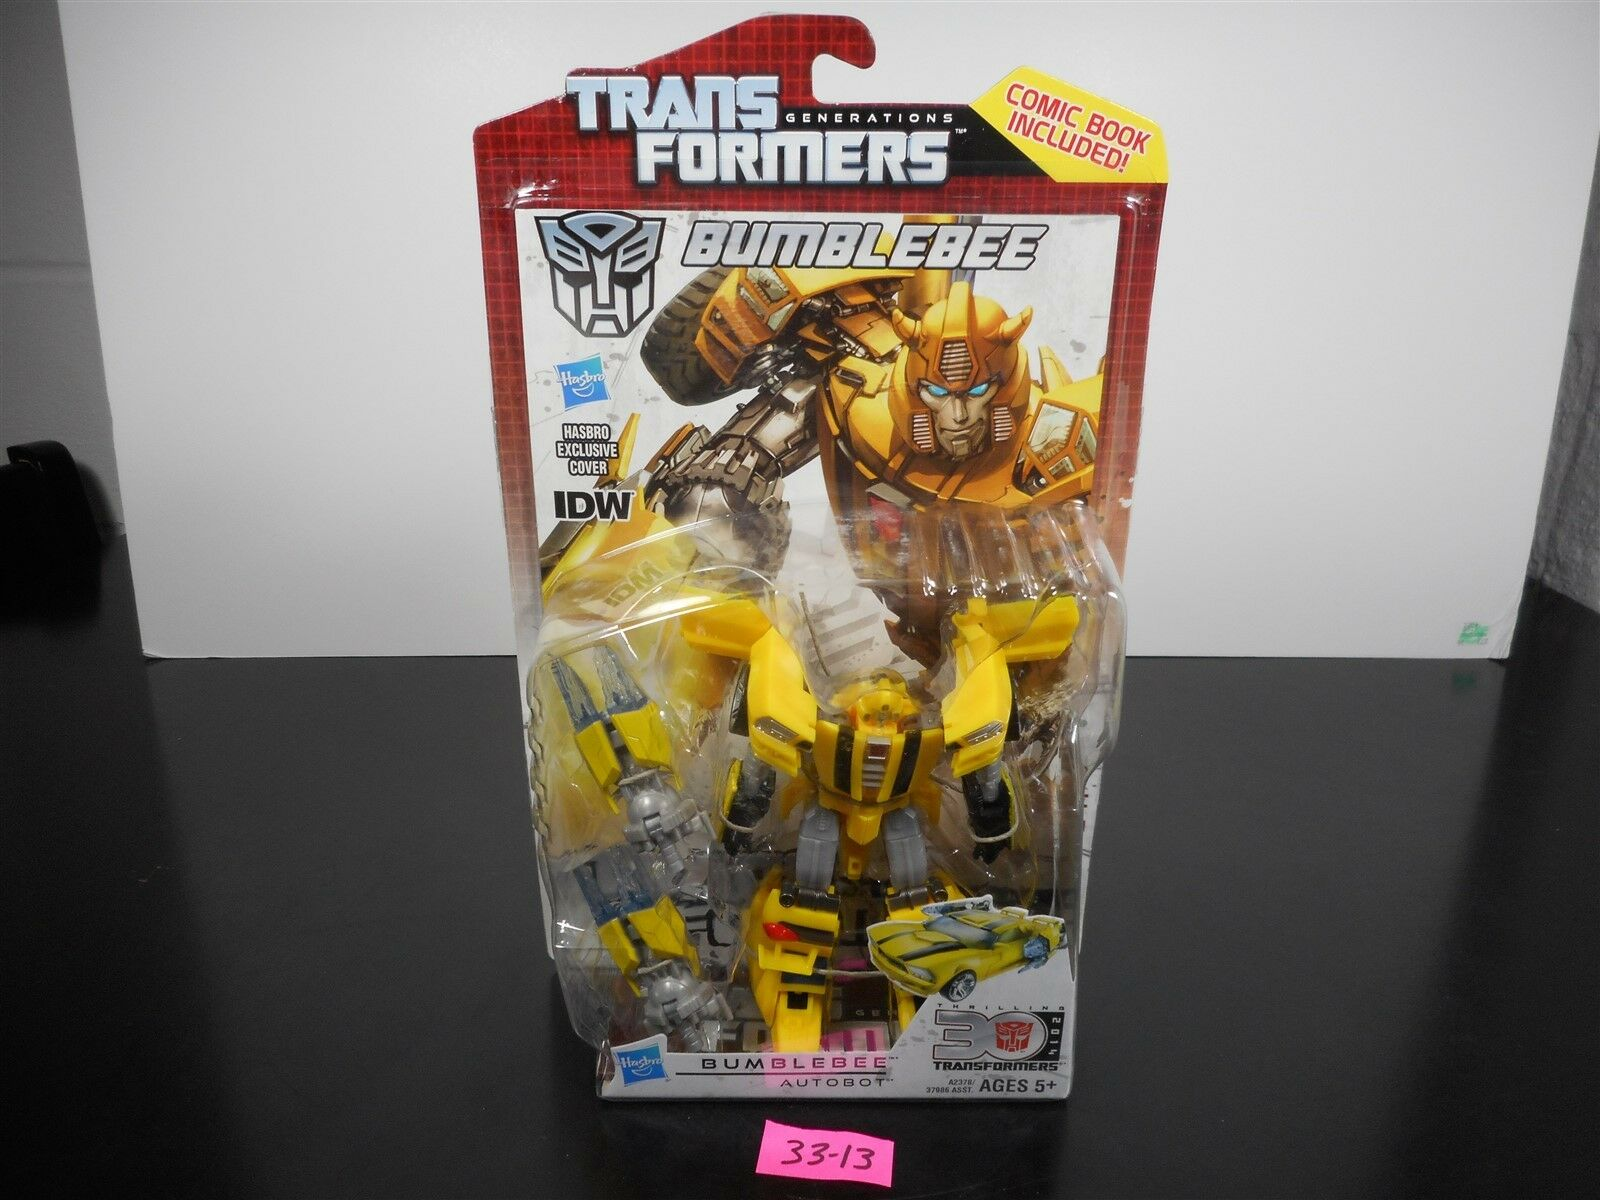 NEW & SEALED  TRANSFORMERS GENERATIONS IDW BUMBLEBEE 30TH ANNIVERSARY COMIC 3313